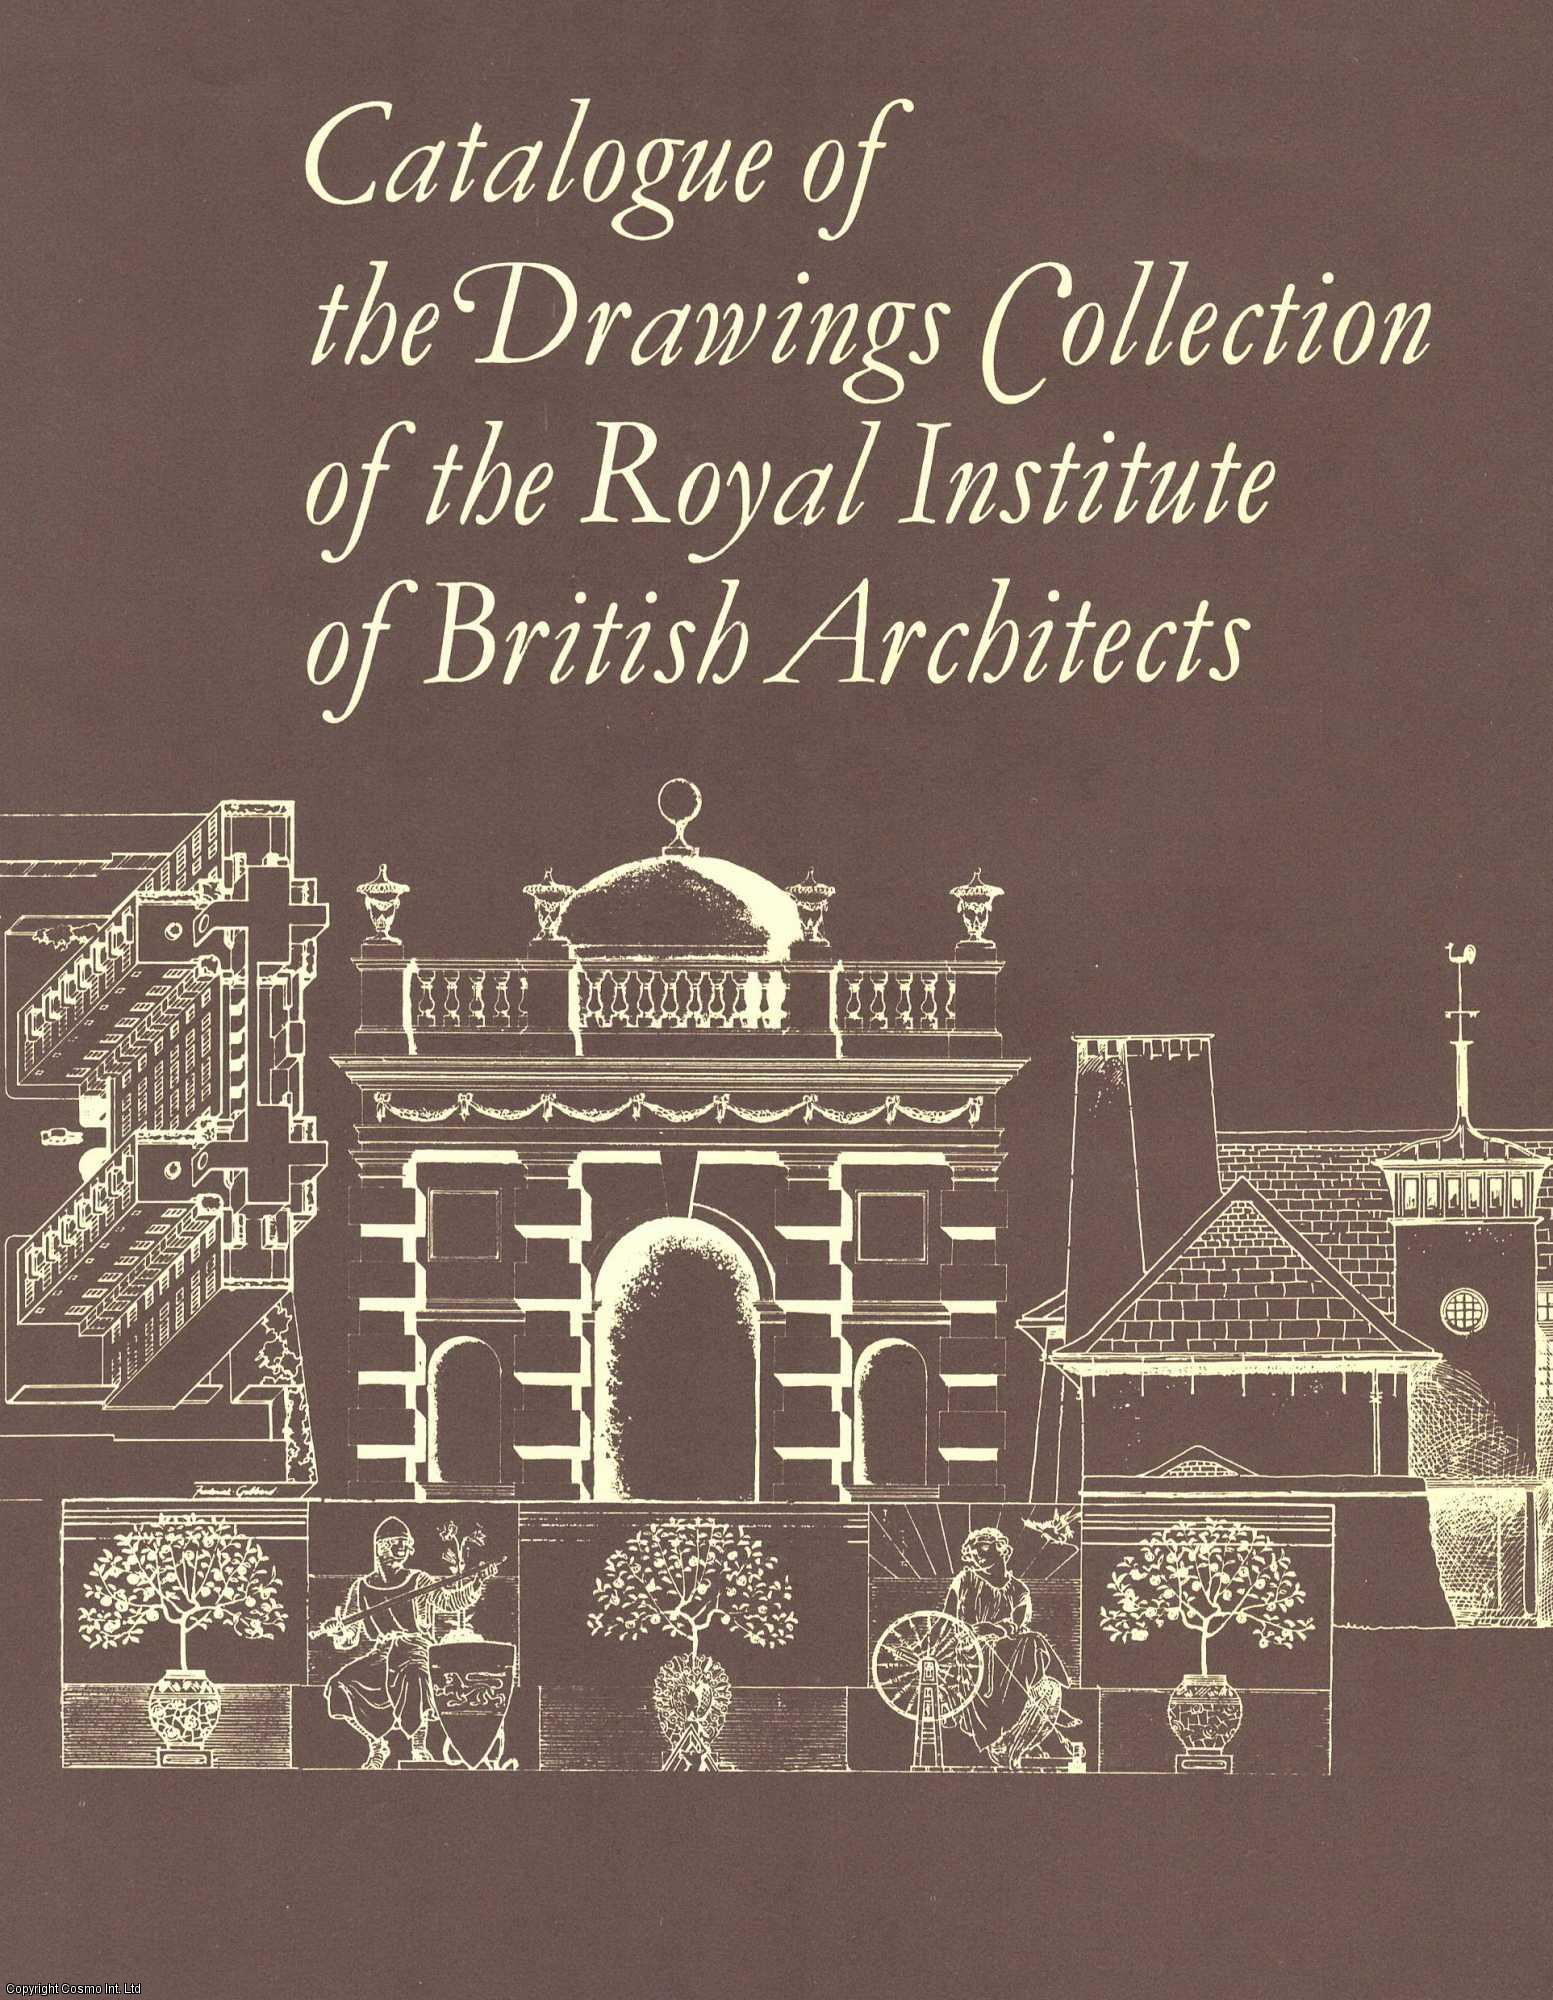 A Cumulative Index : Catalogue of the Drawings Collection of the Royal Institute of British Architects., Bettley, Editor) James (Author